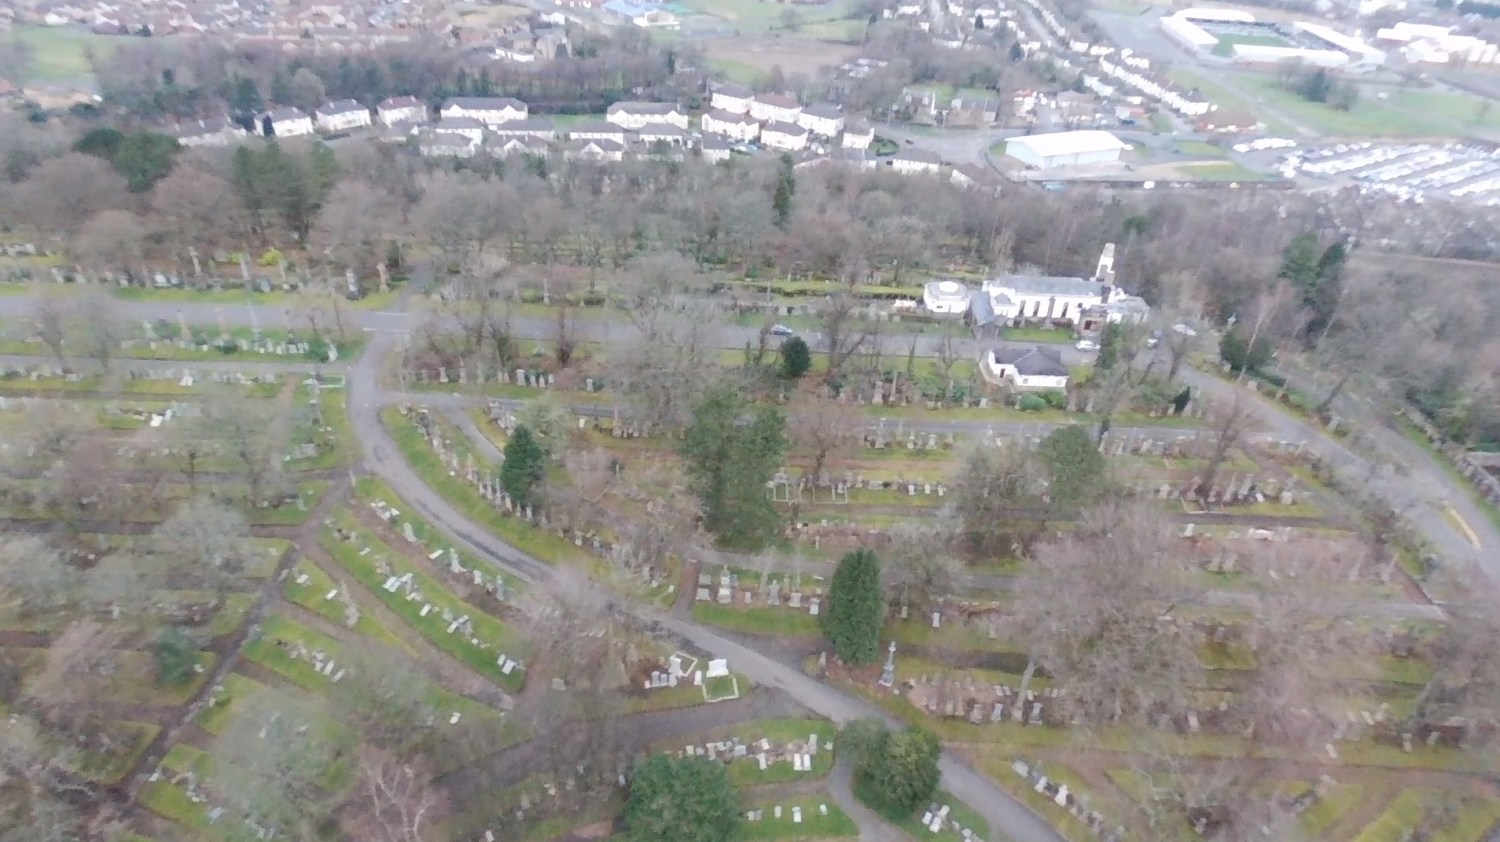 woodside cemetery and crematorium